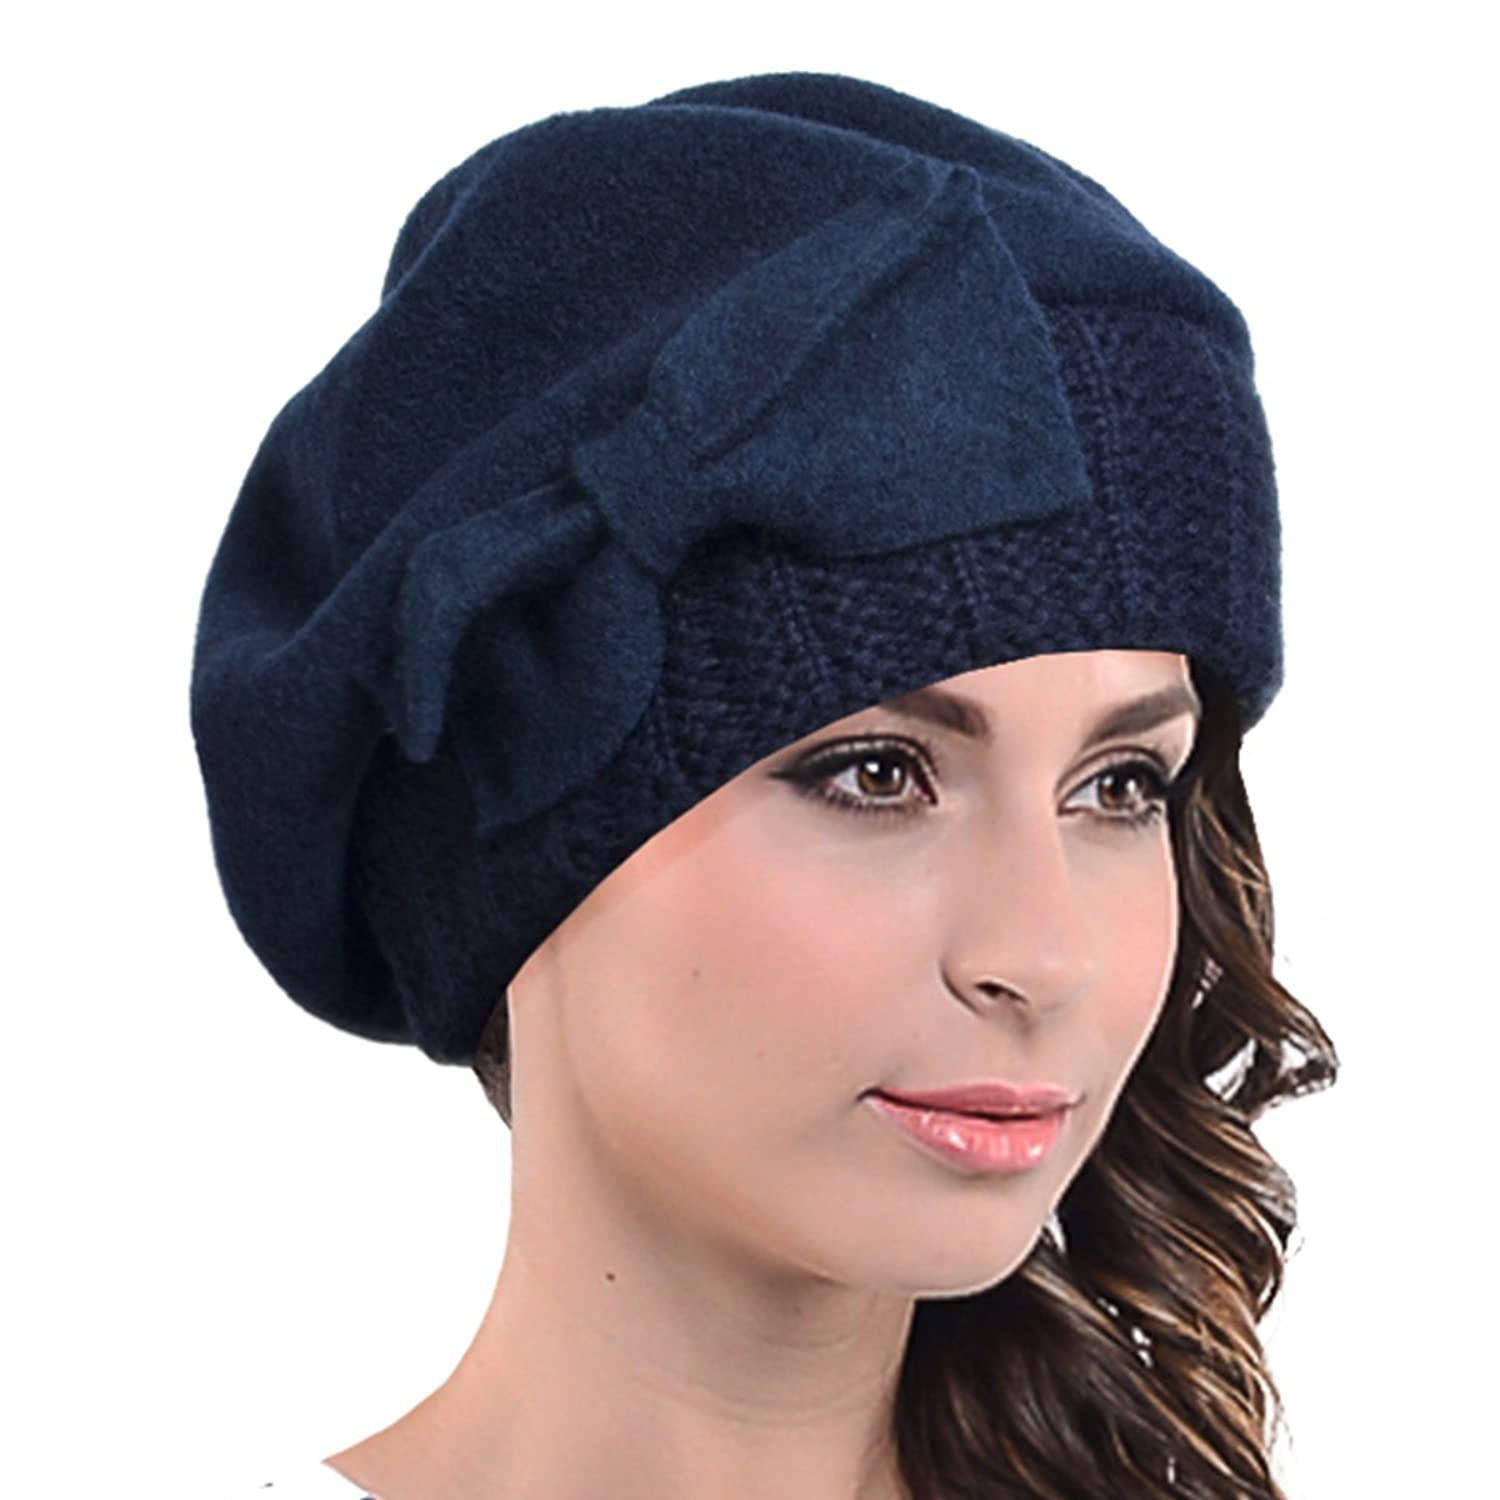 1950s Women's Hat Styles & History Lady French Beret Wool Beret Chic Beanie Winter Hat Jf-br034 $21.99 AT vintagedancer.com